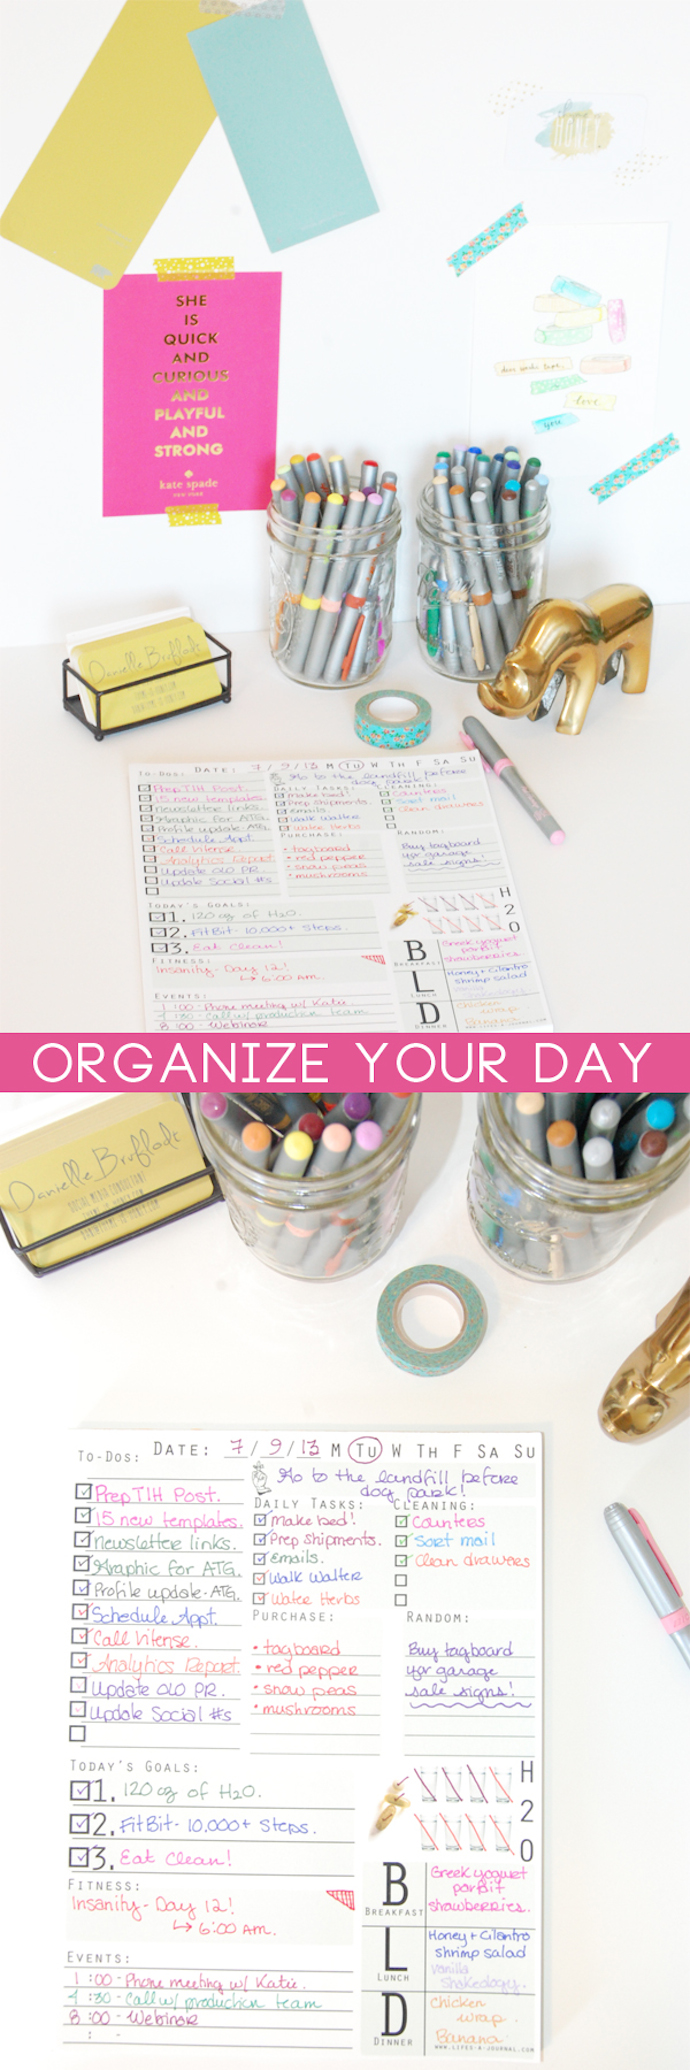 How-to-Organize-Your-Day